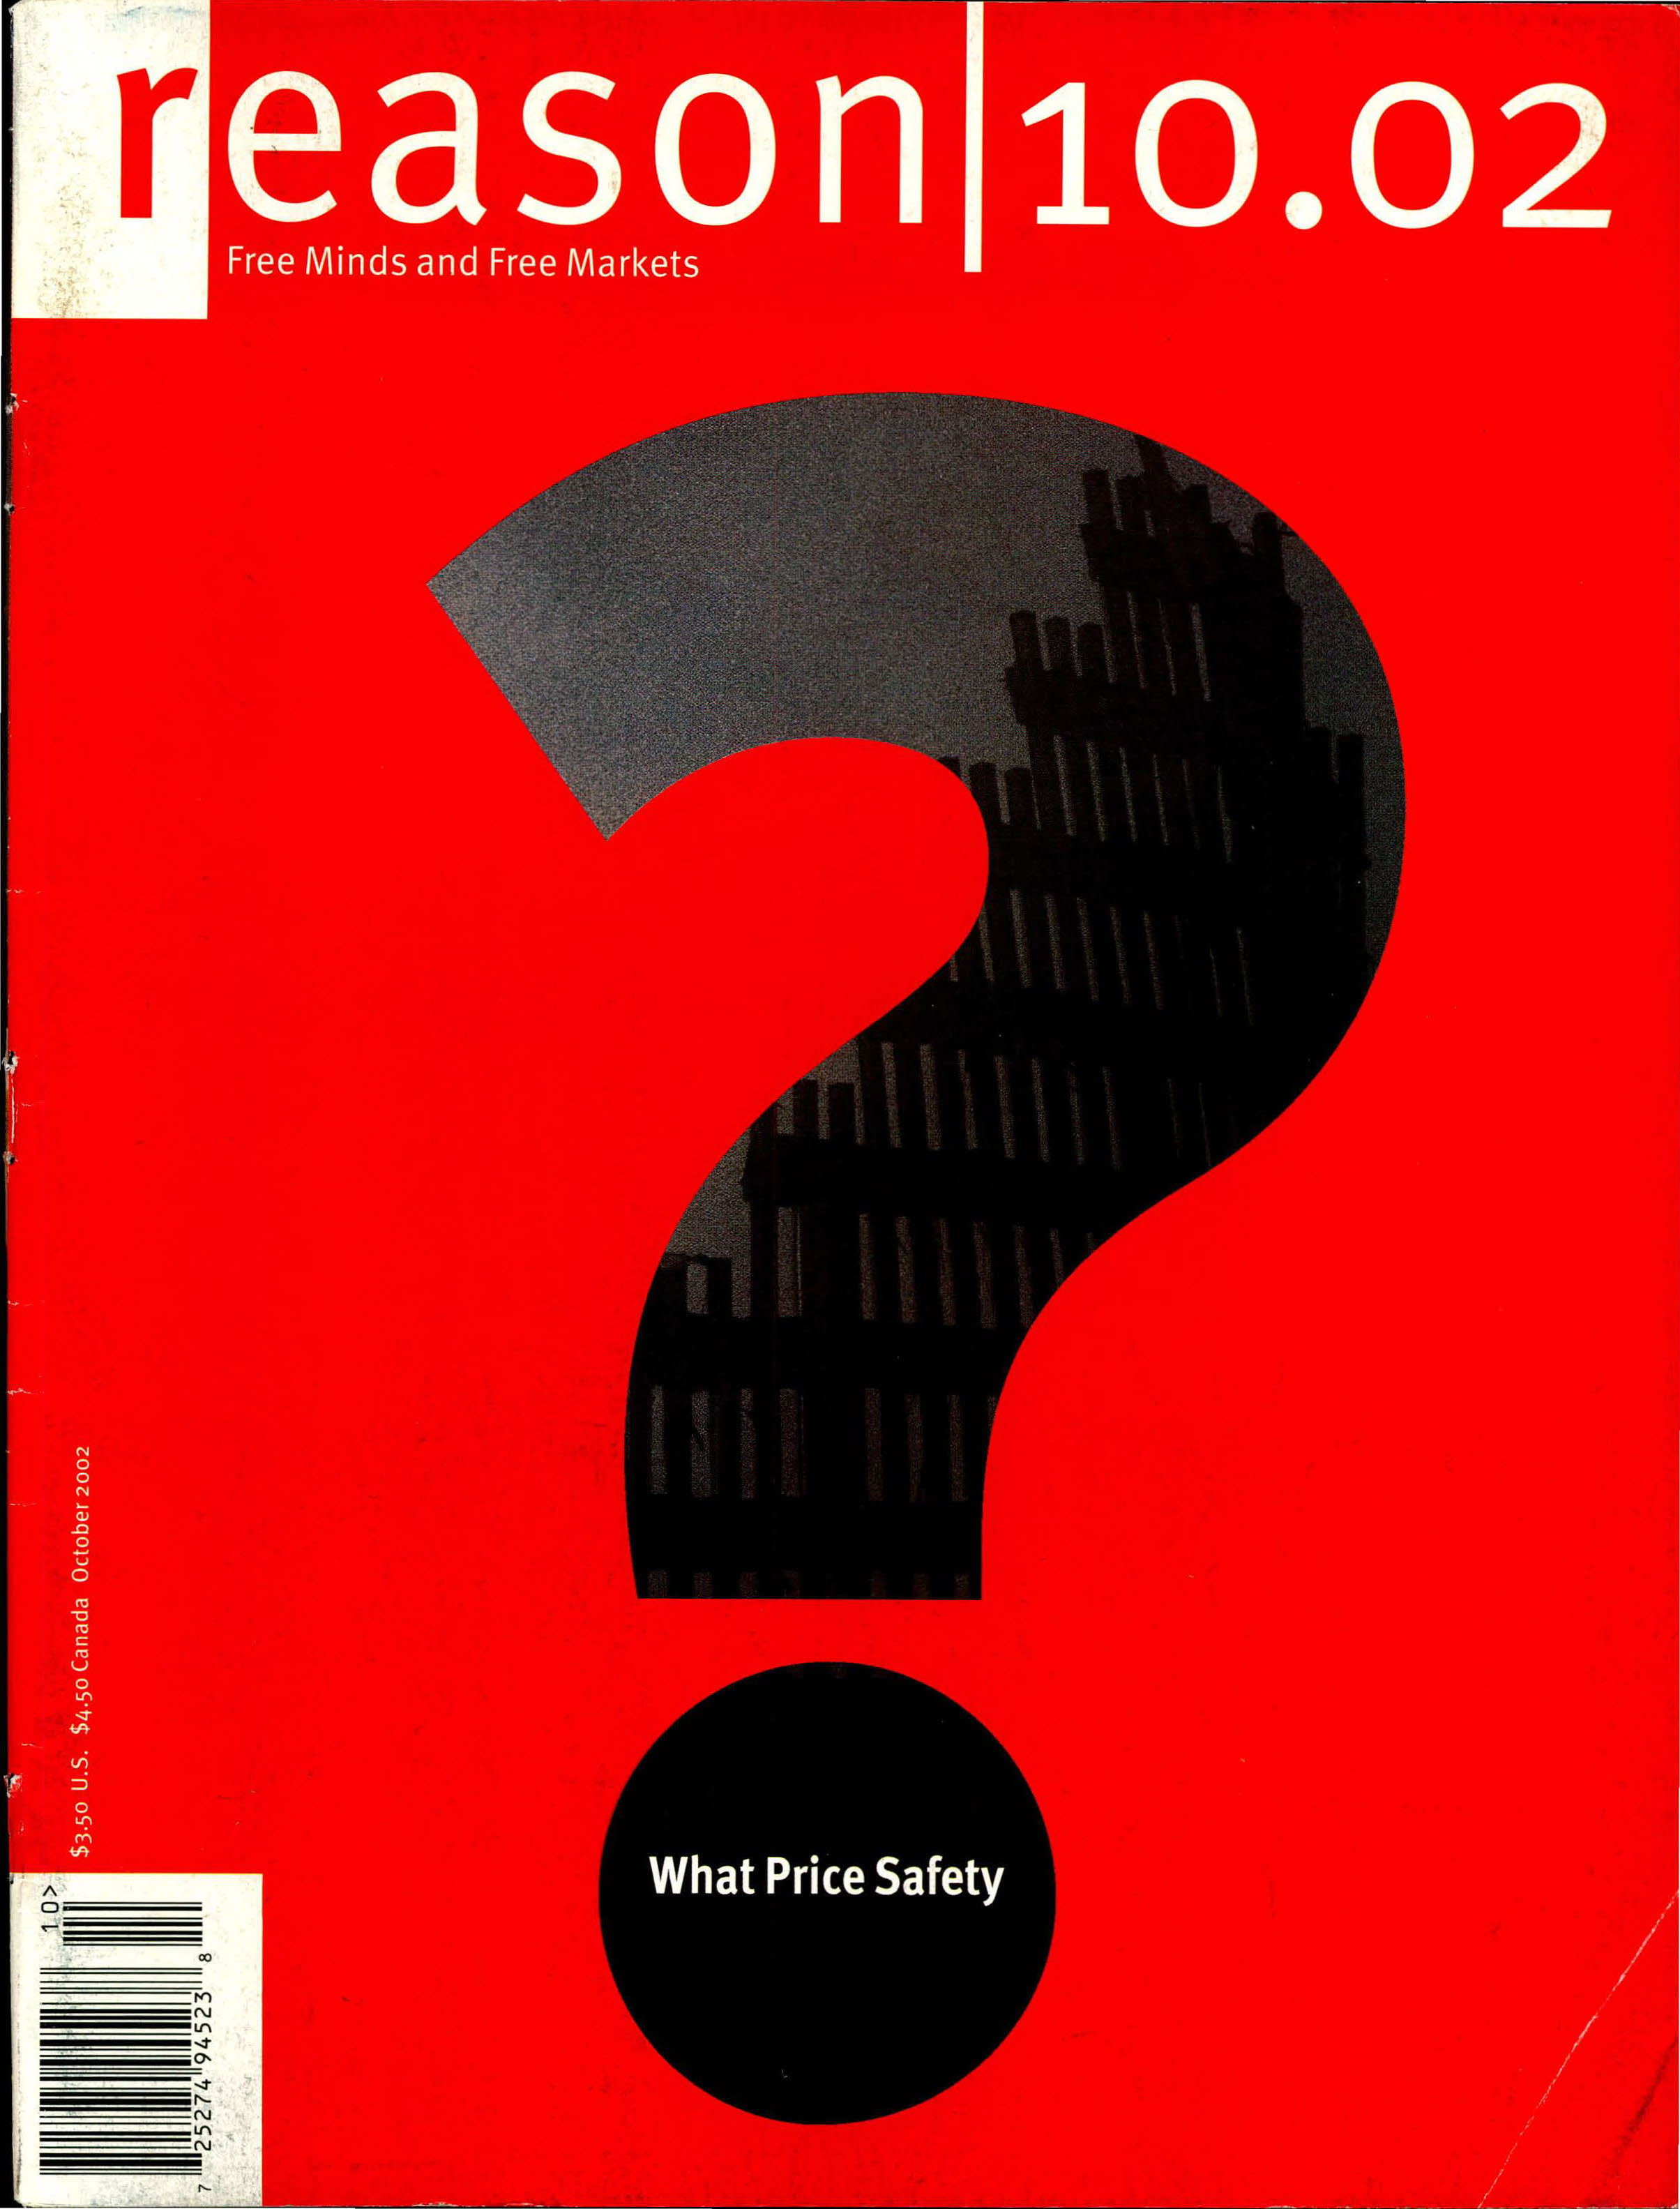 Reason Magazine, October 2002 cover image